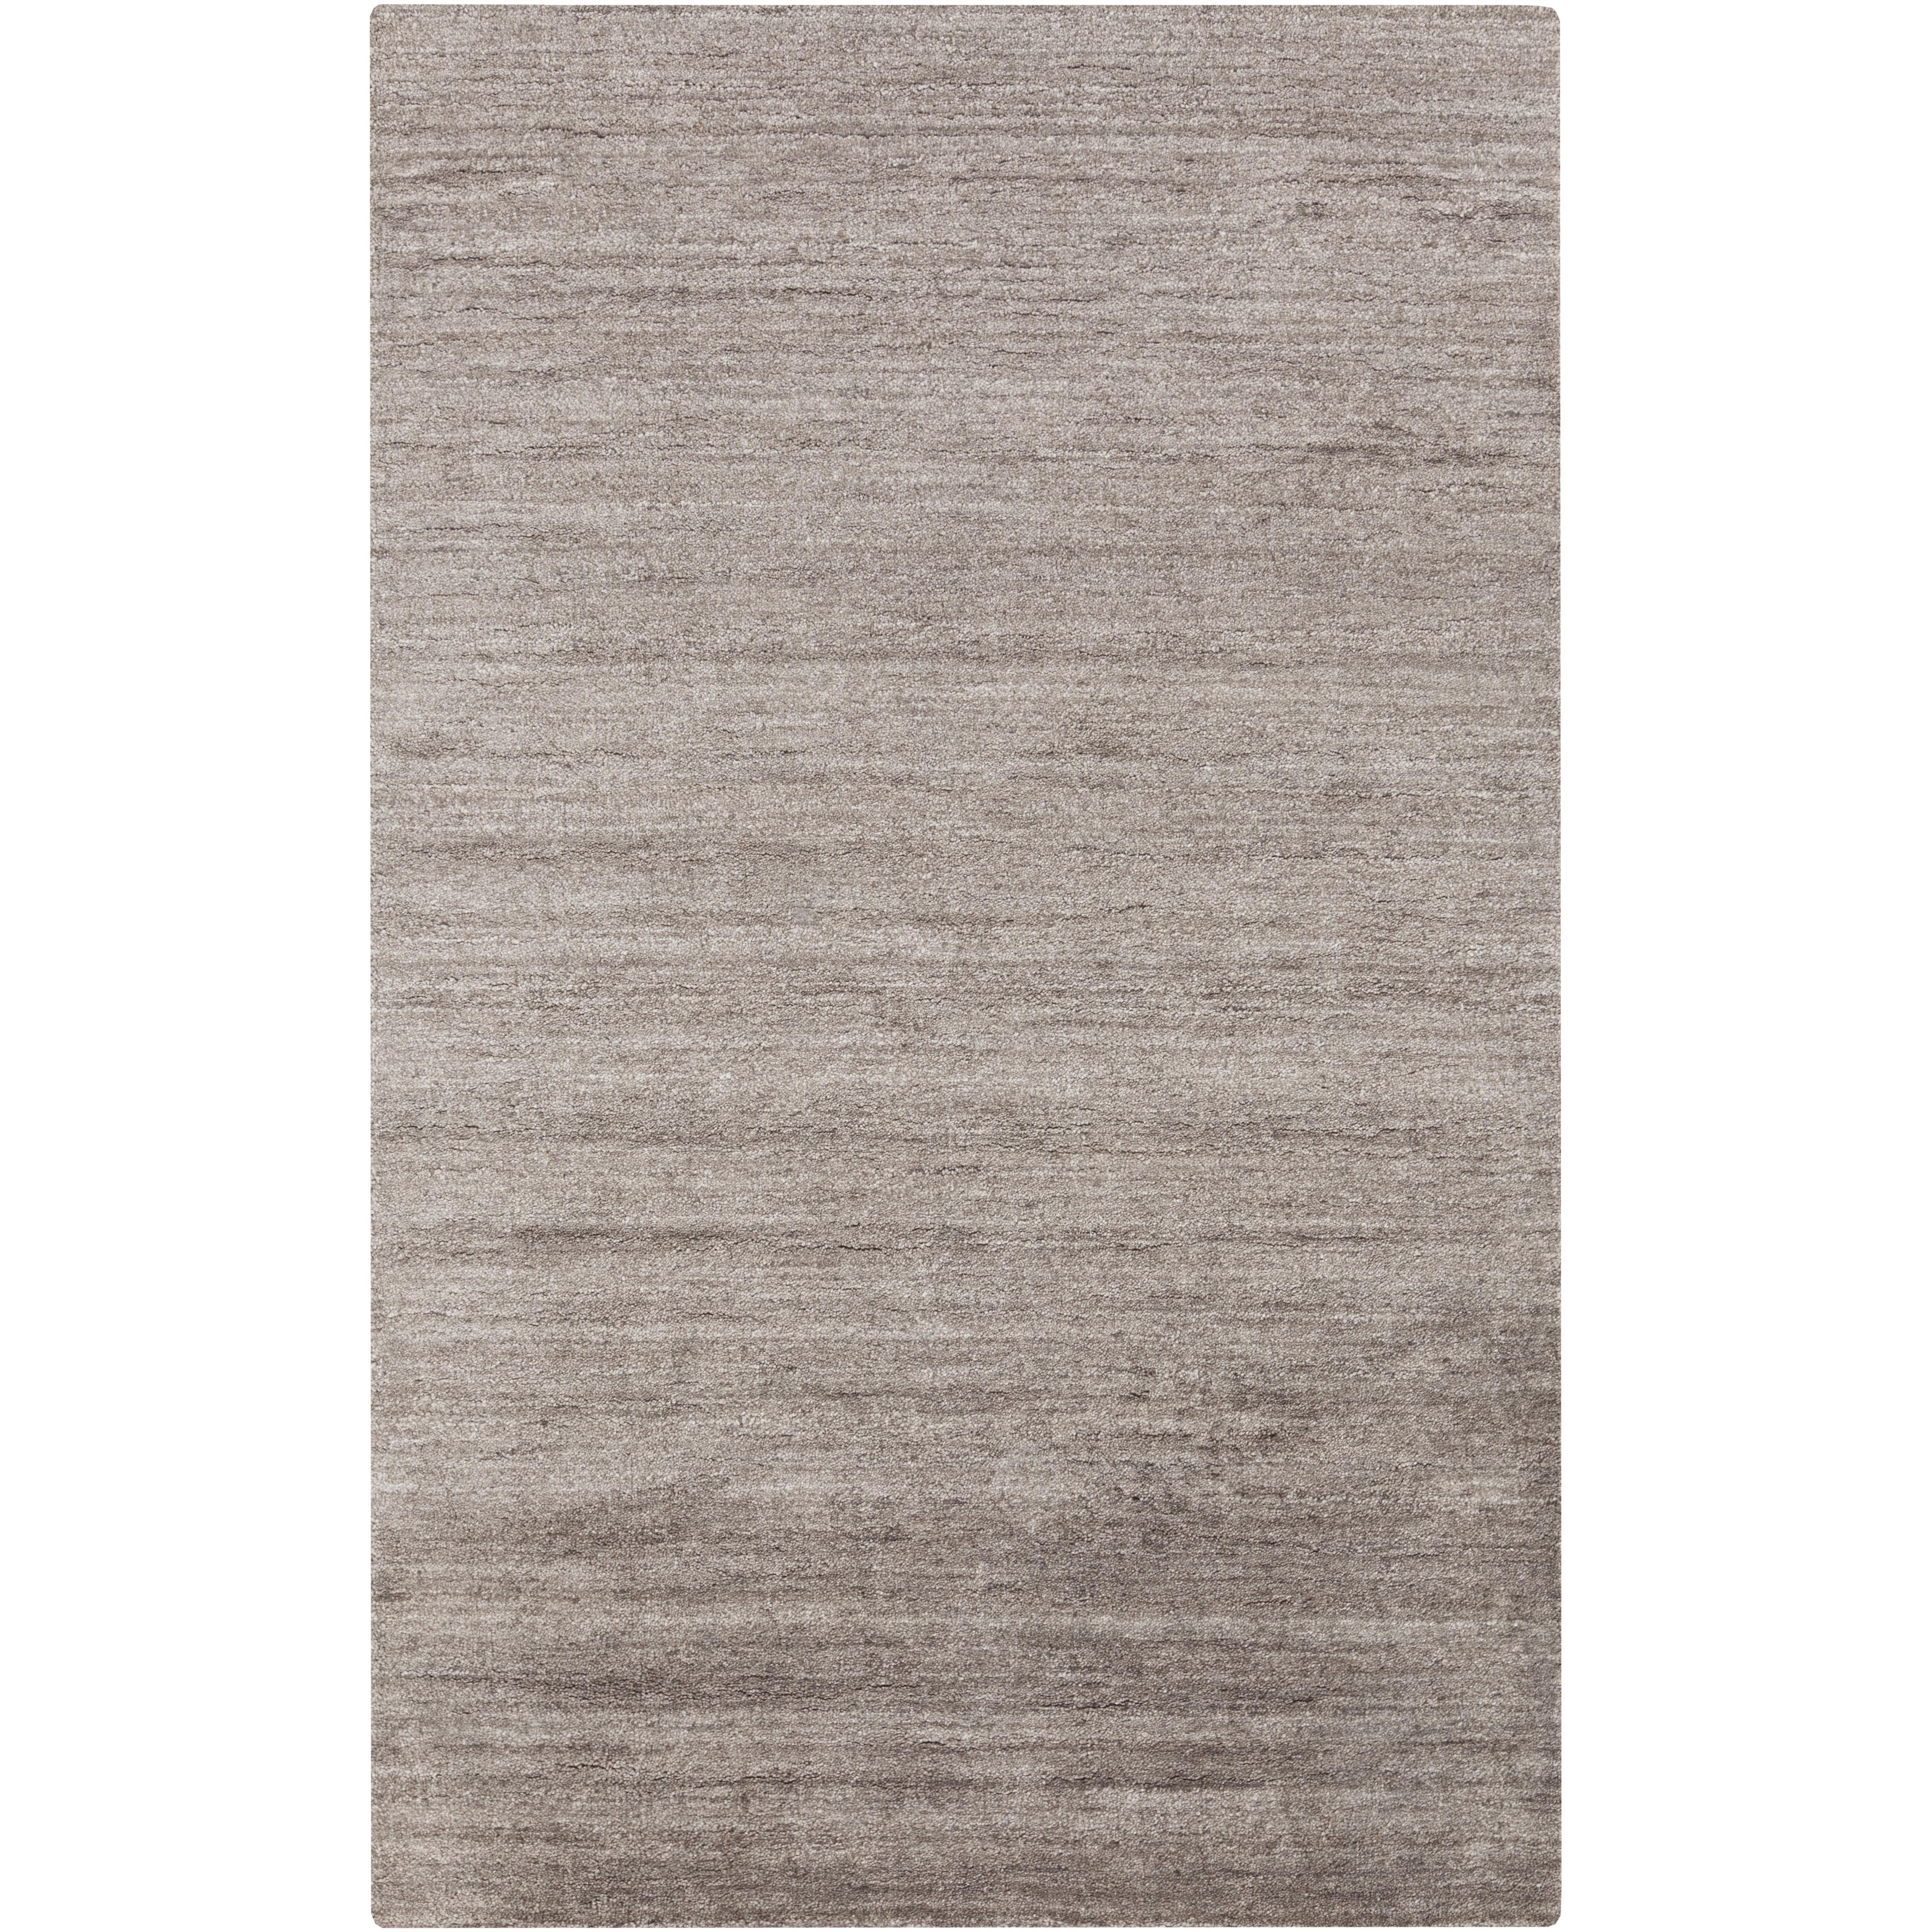 """Haize 3'6"""" x 5'6"""" by 9596 at Becker Furniture"""